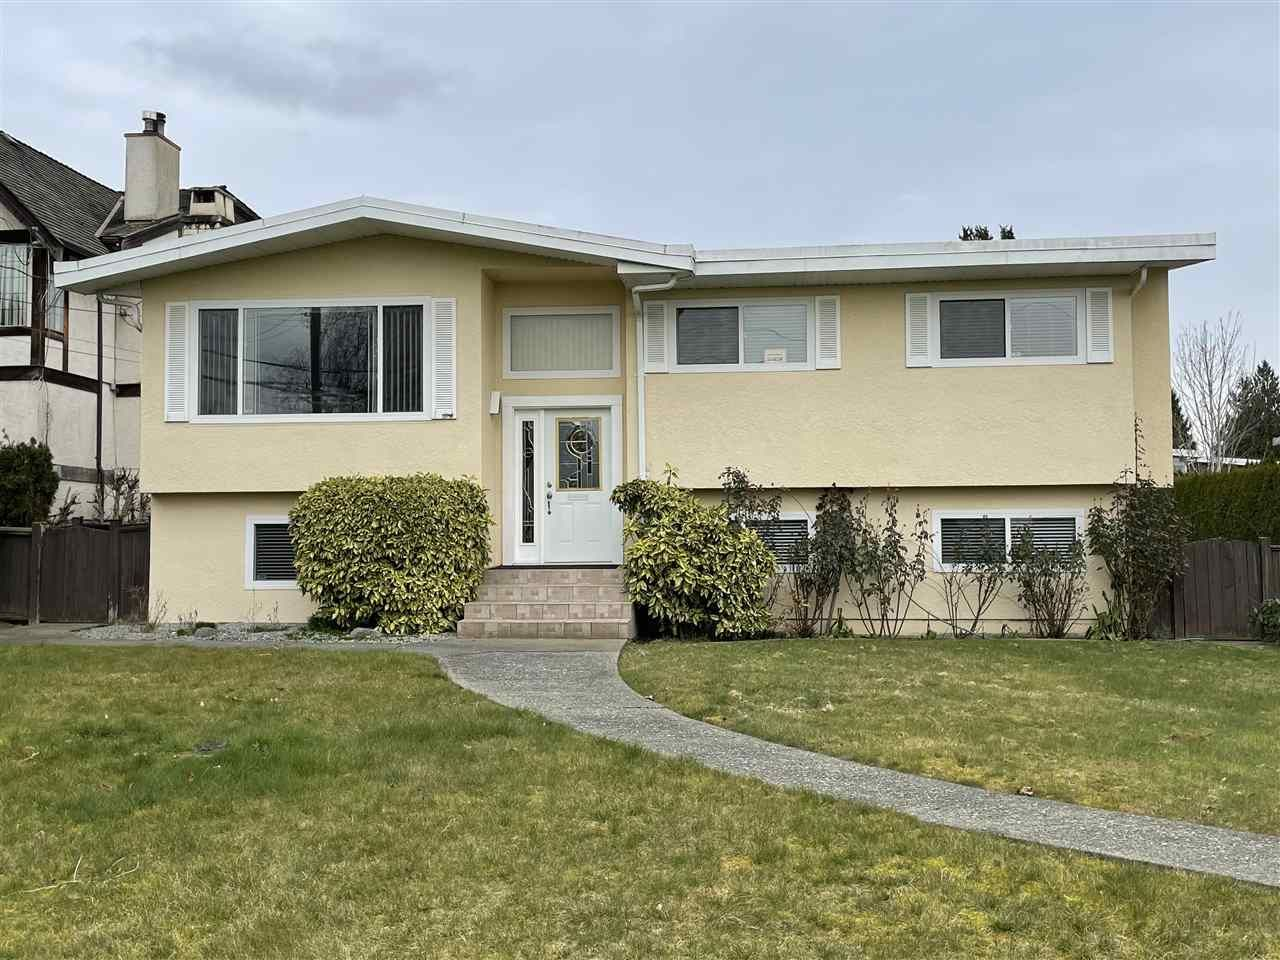 Main Photo: 1890 KENSINGTON Avenue in Burnaby: Parkcrest House for sale (Burnaby North)  : MLS®# R2555782